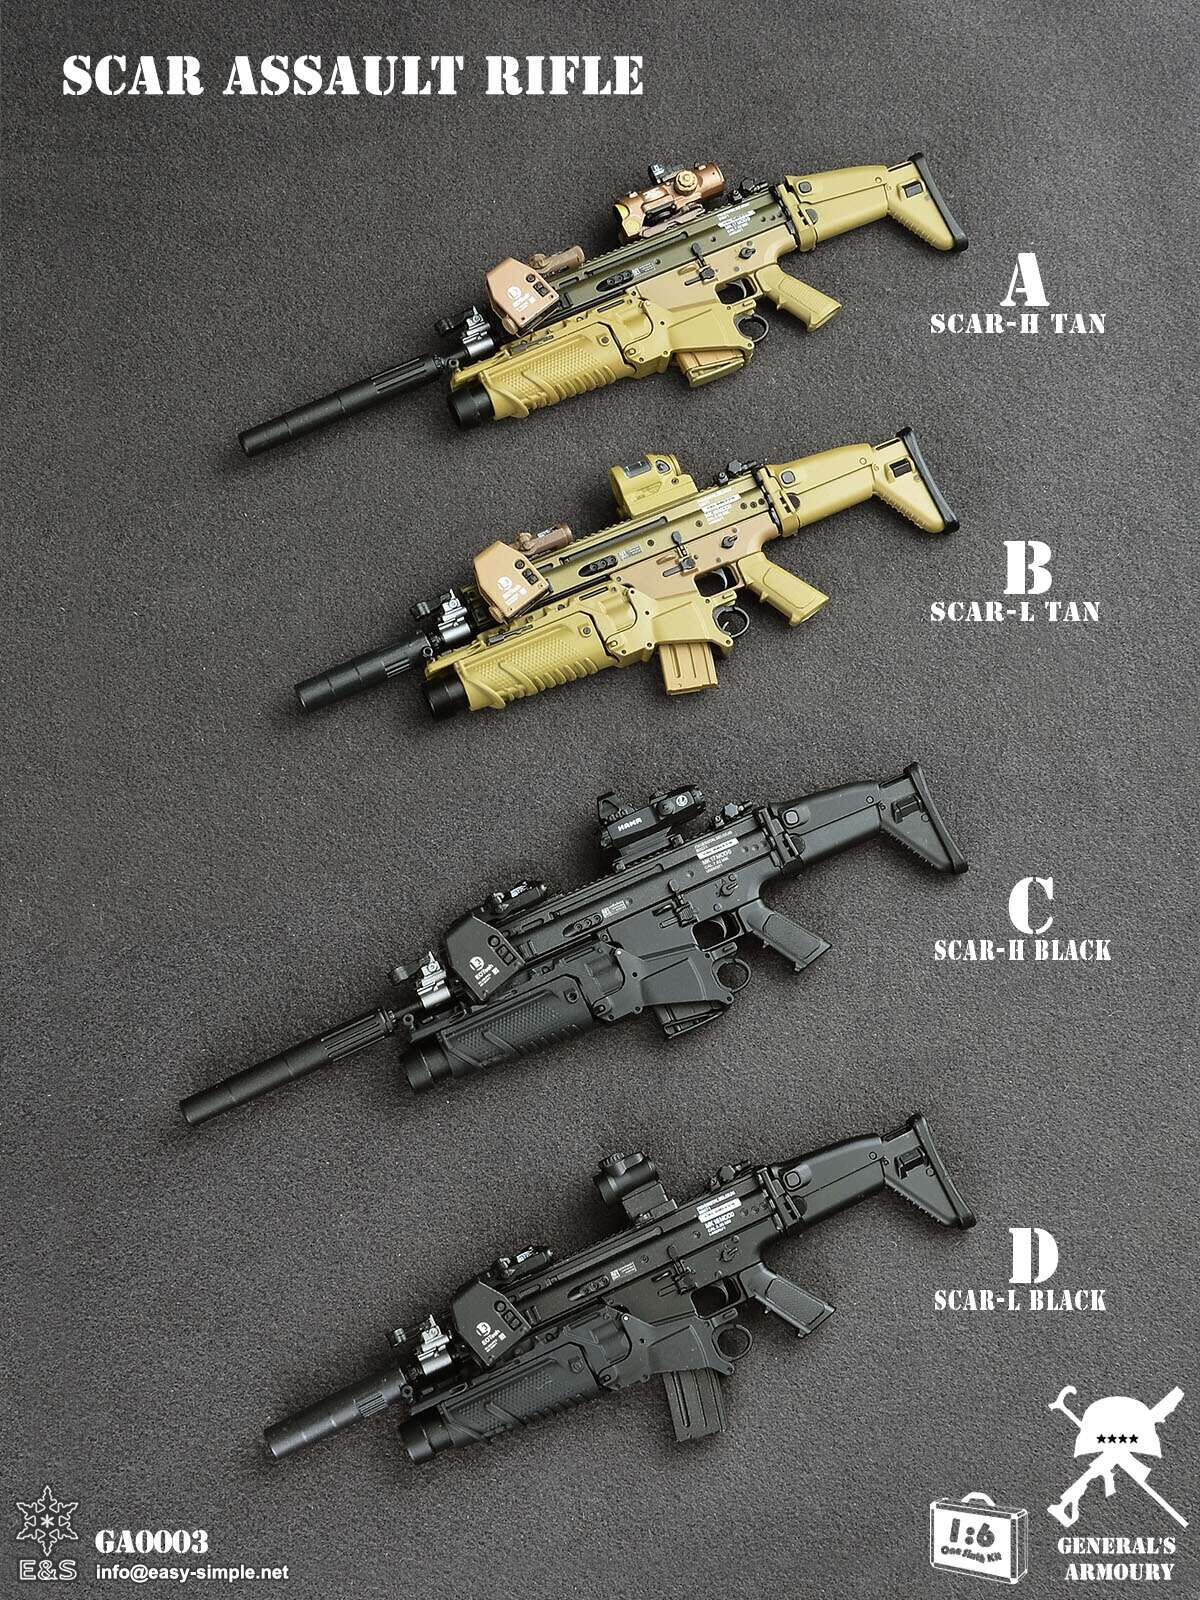 General's Armoury x Easy & Simple GA0003 SCAR Assault Rifle